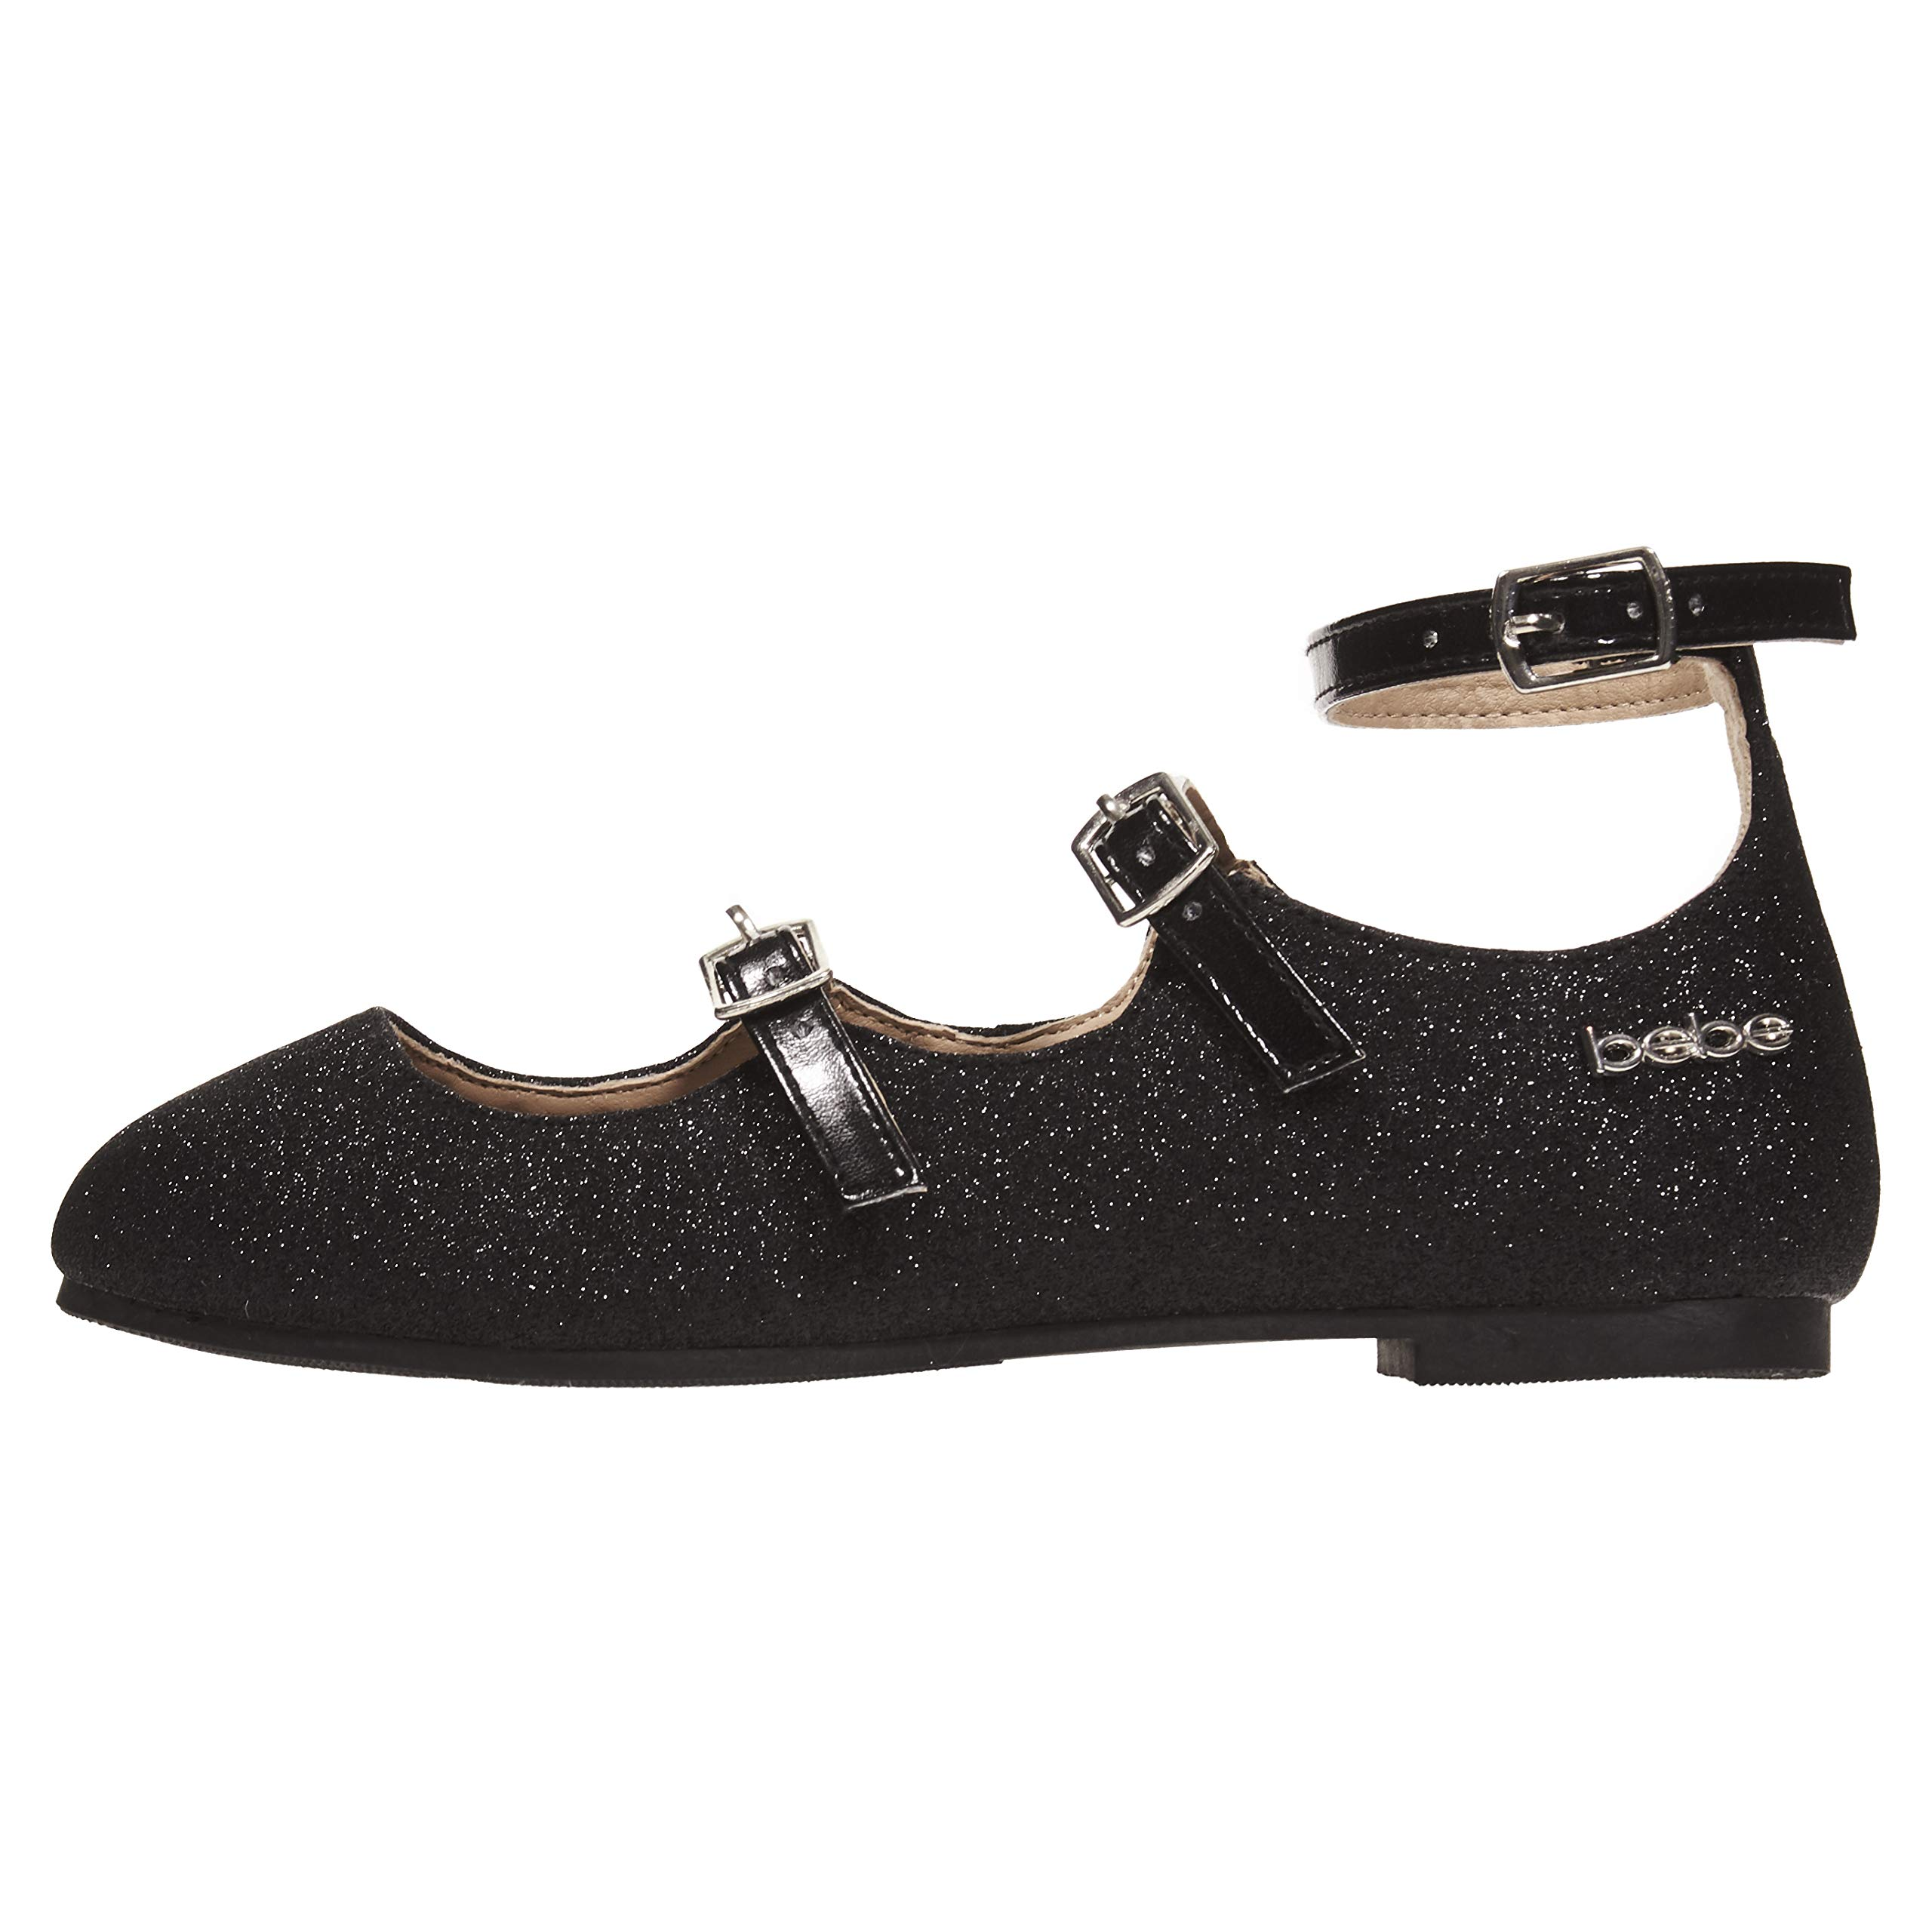 bebe Girls Ballet Flats Size 4 with Glitter and Metallic Straps Black